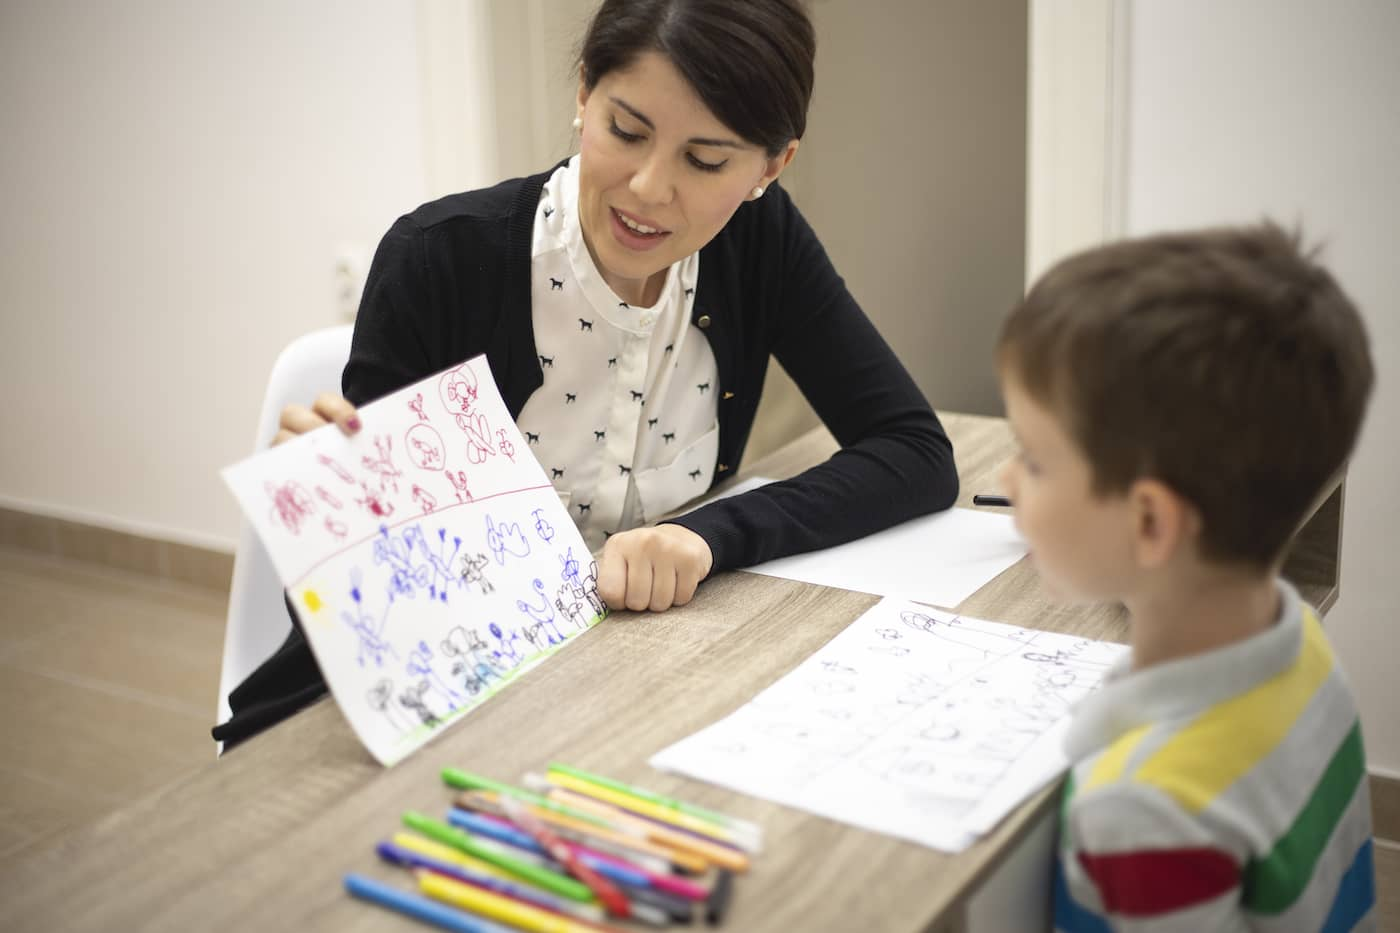 What Are the Differences Between a Clinical Social Worker and a Counselor?